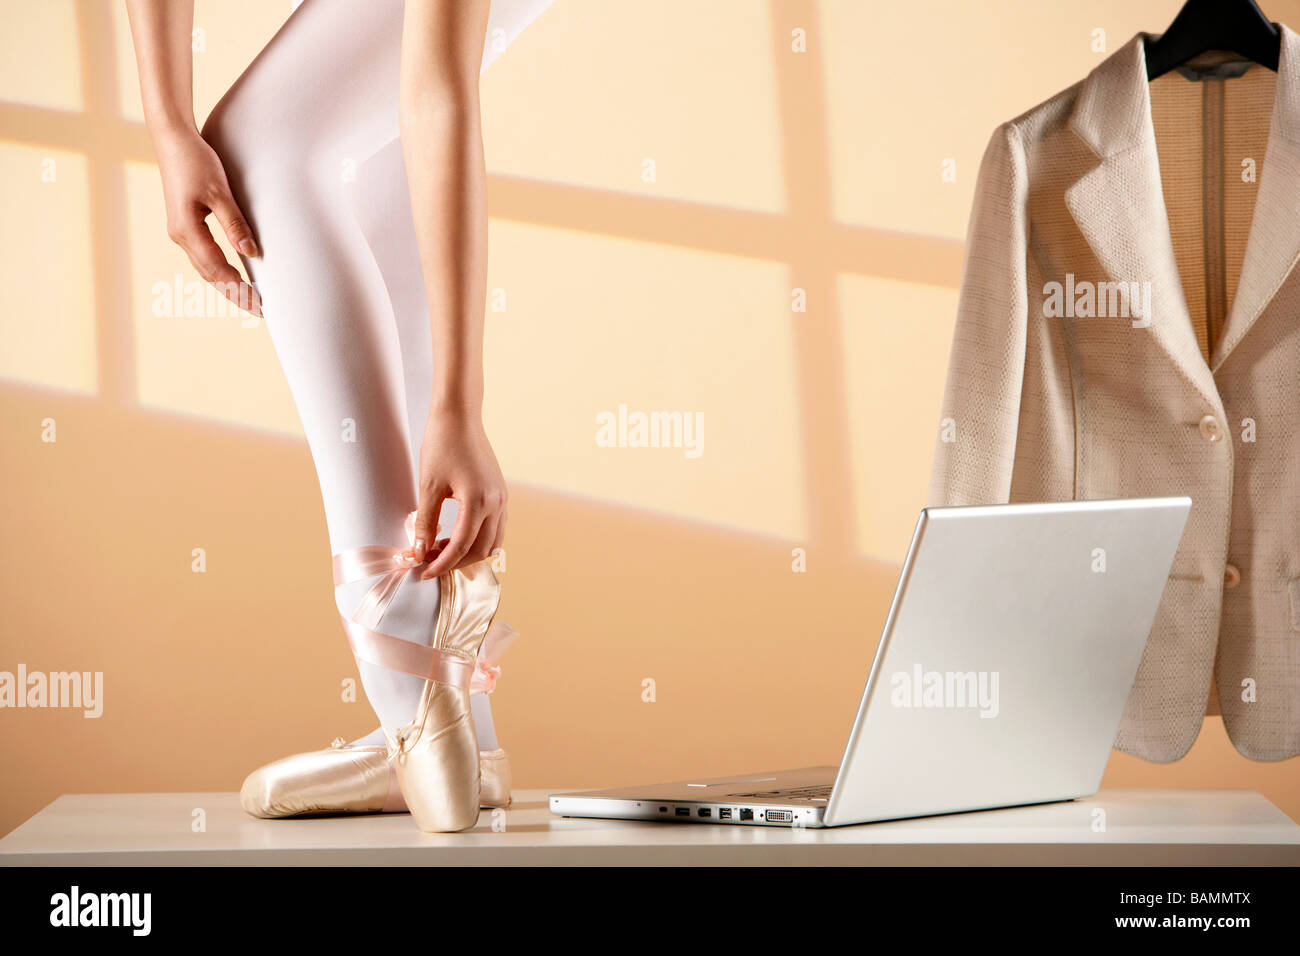 Ballet Dancer Tying Up Pointe Shoes - Stock Image